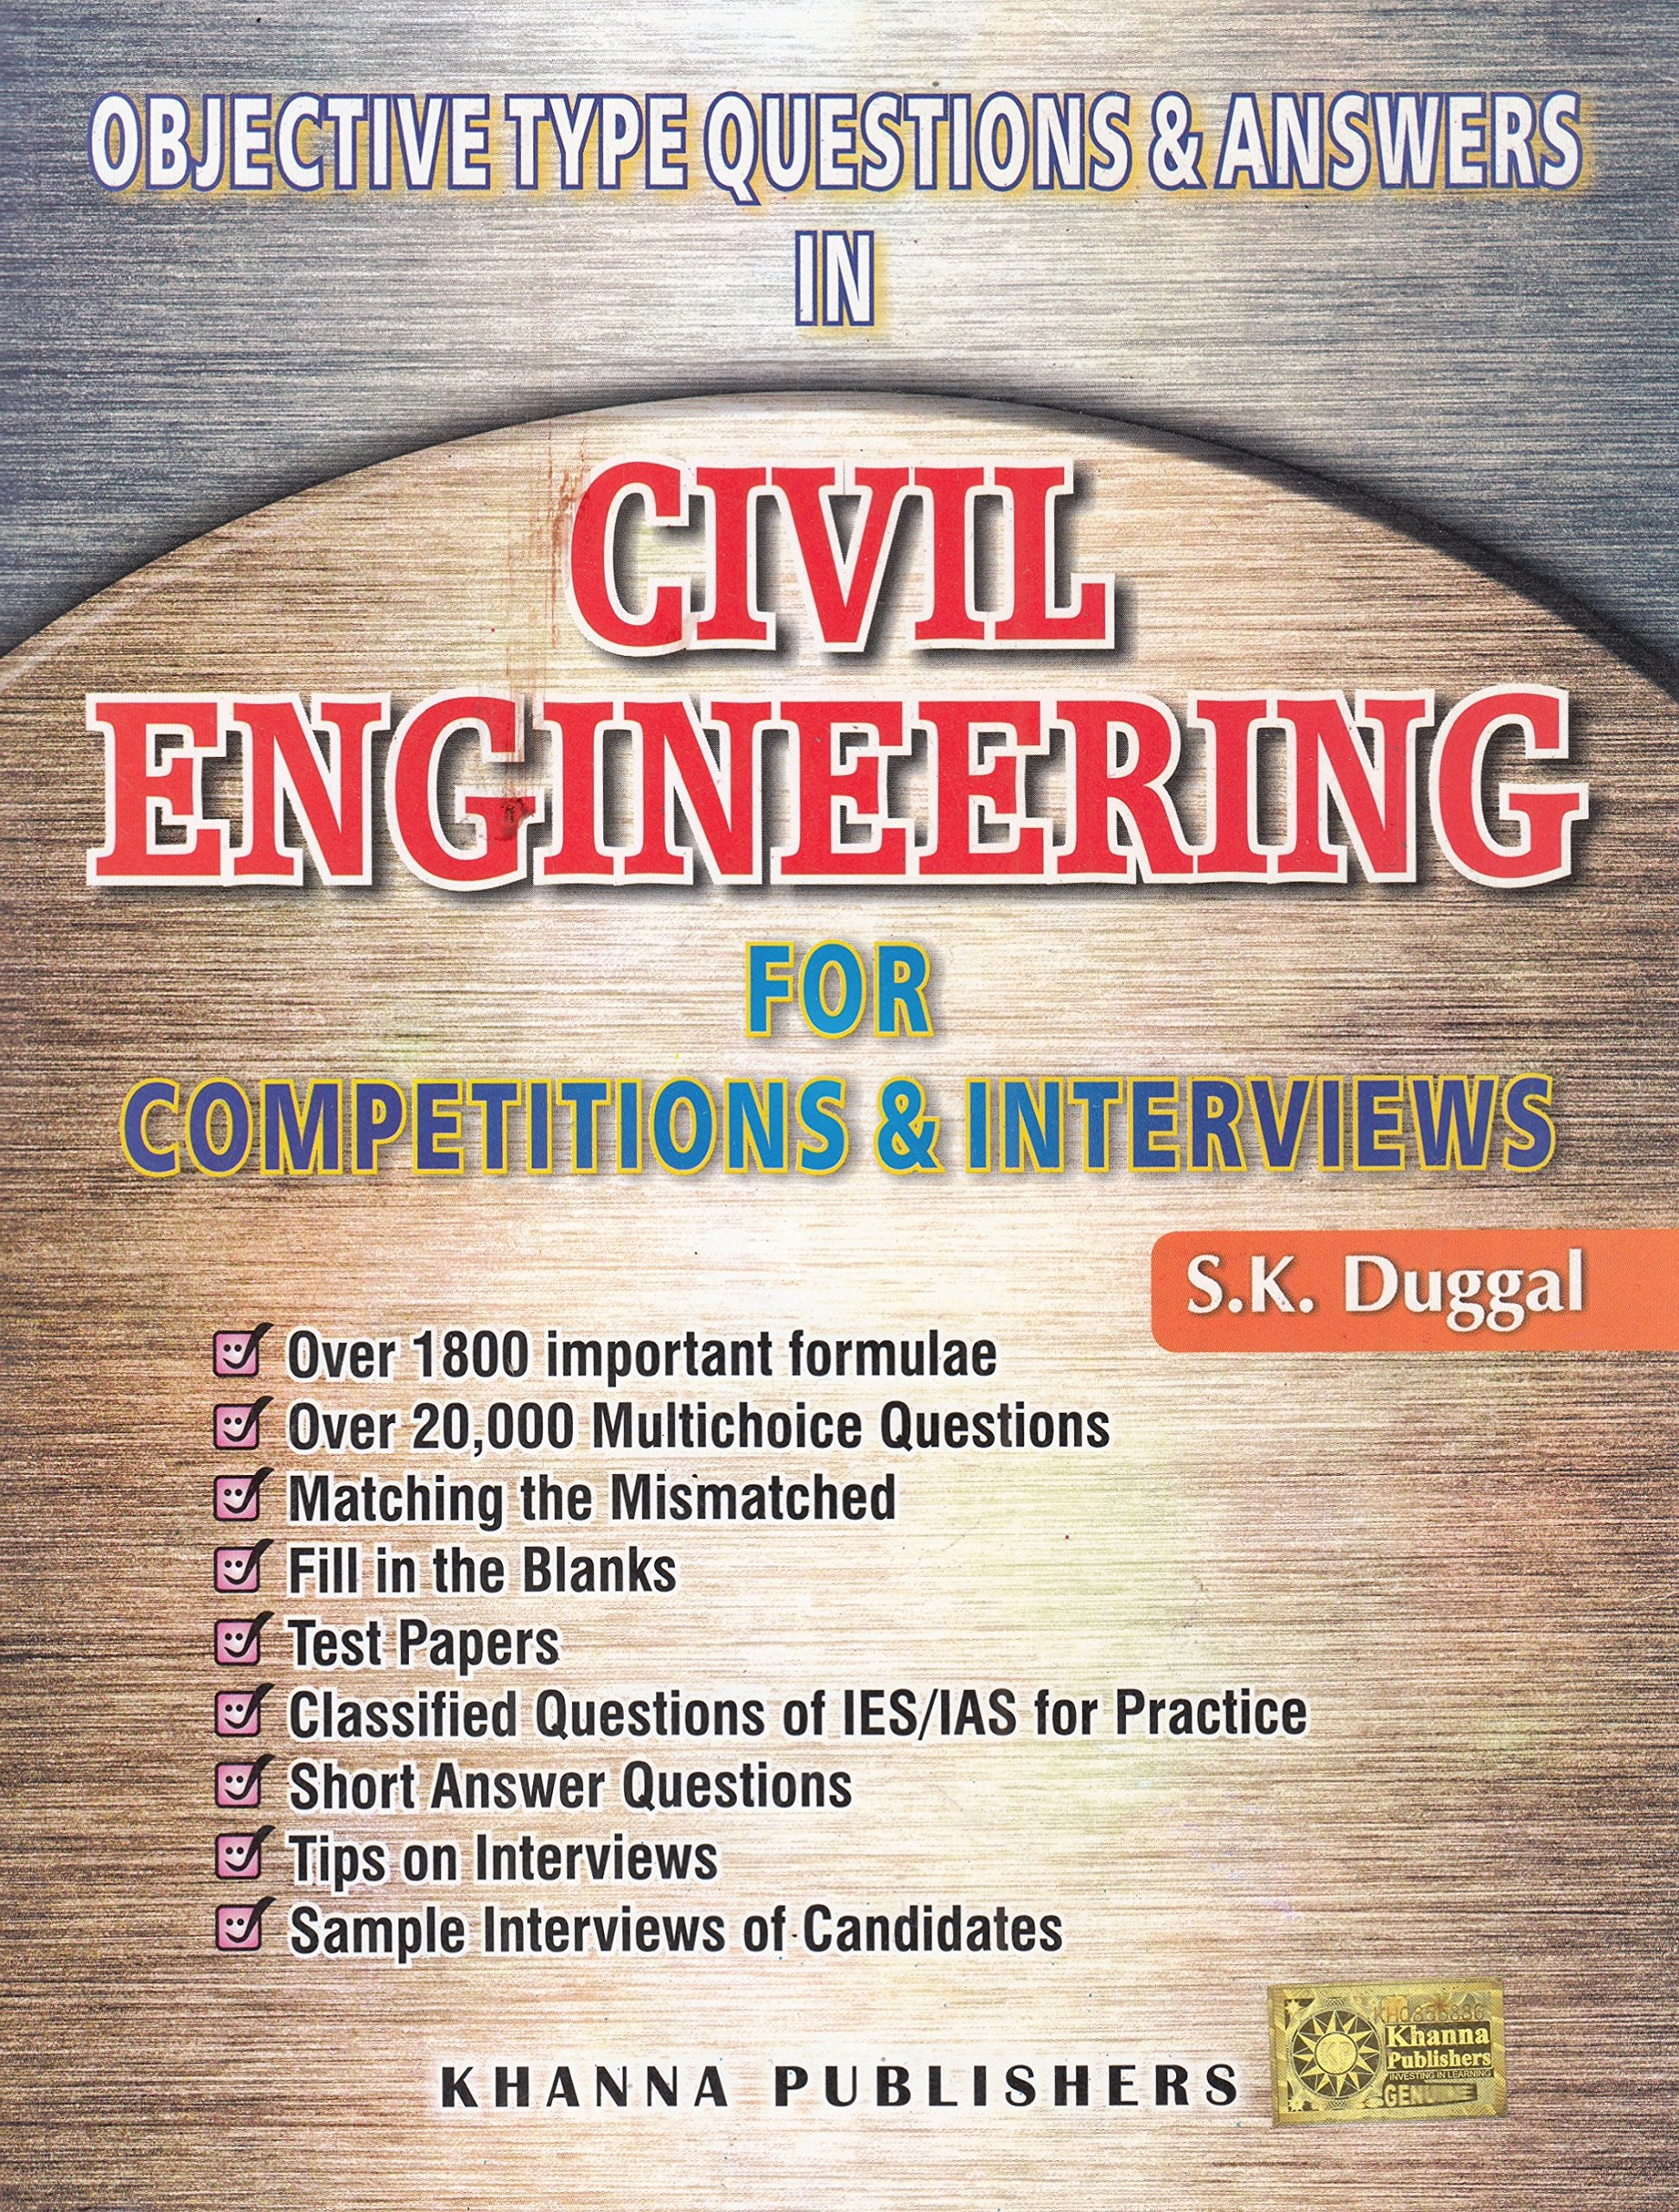 Engineering pdf khanna hand civil p book